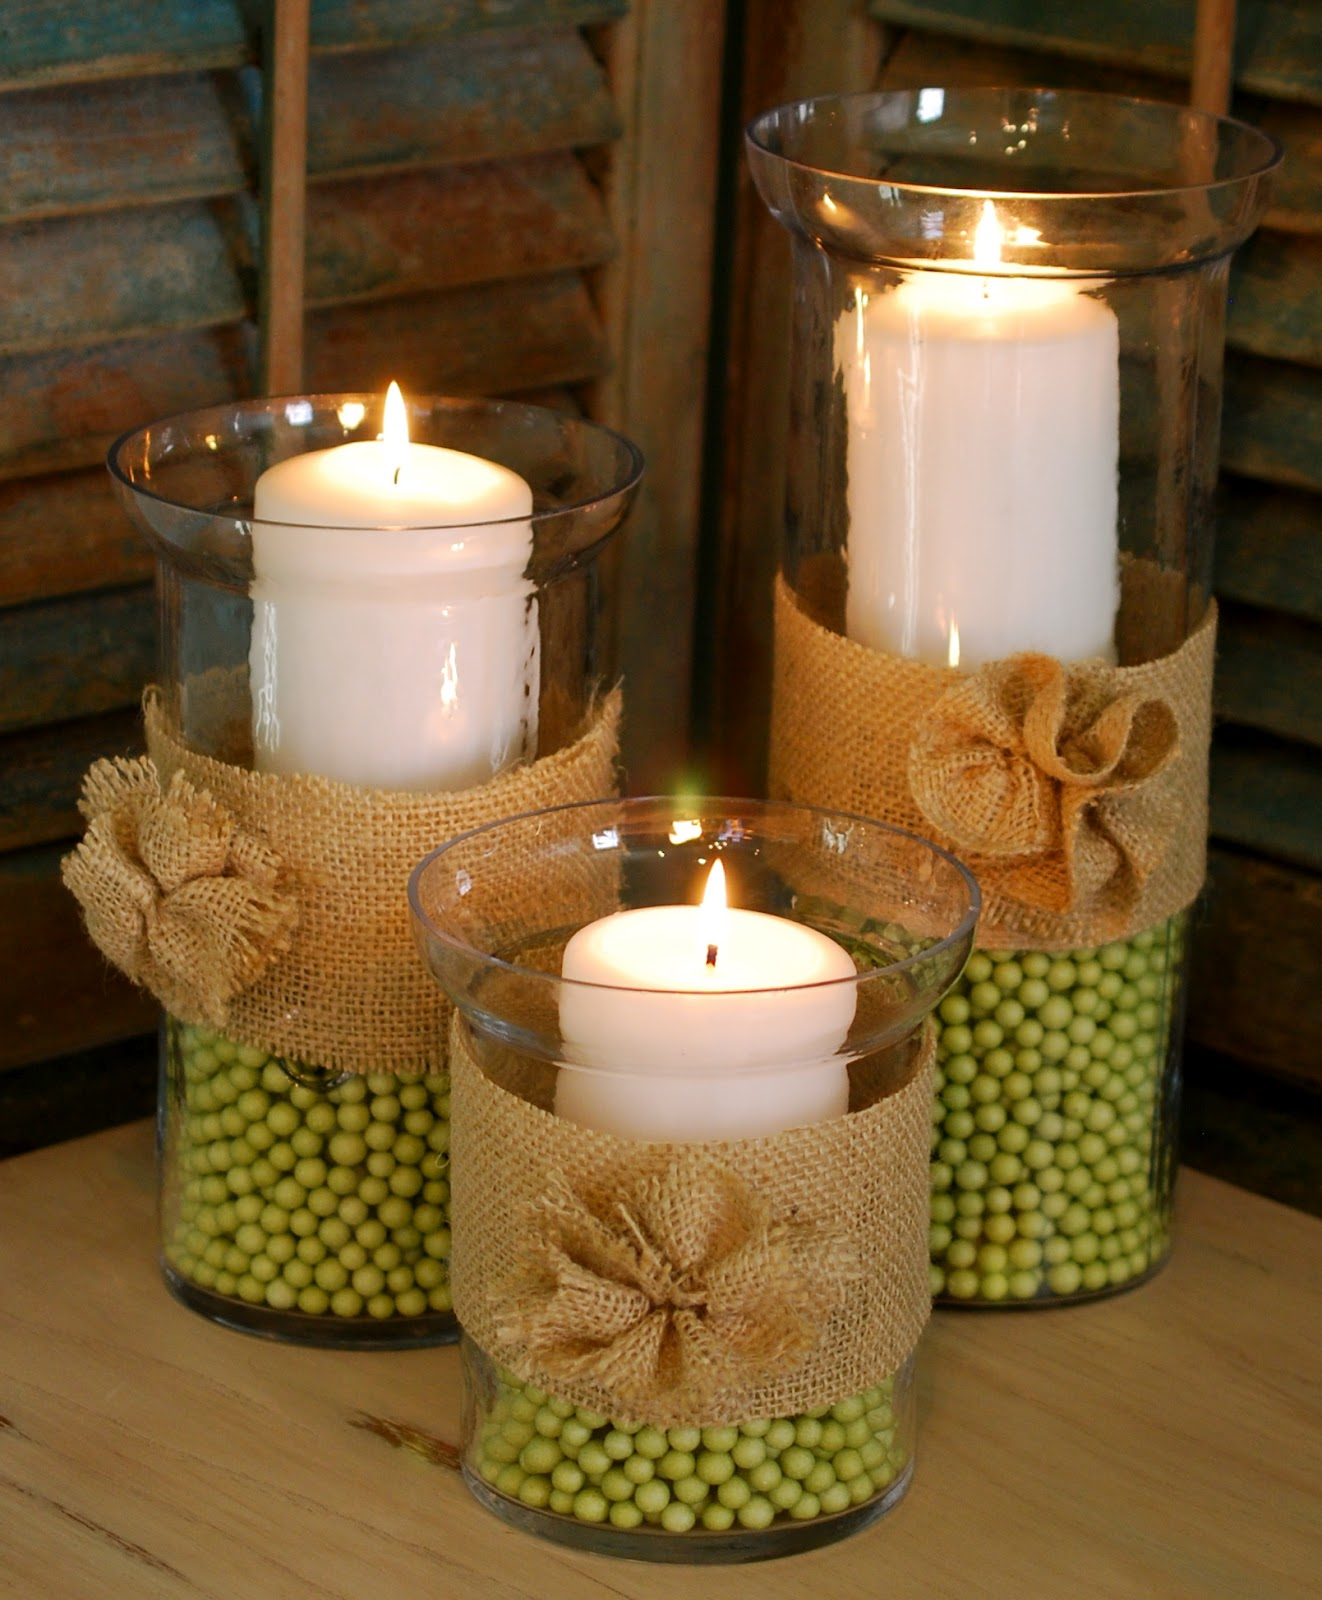 Spring hurricane vasesburlap rosettes amanda jane brown need a quick and easy spring centerpiece or addition to your coffee table these spring hurricane vases are a cinch to put together and easily transition reviewsmspy